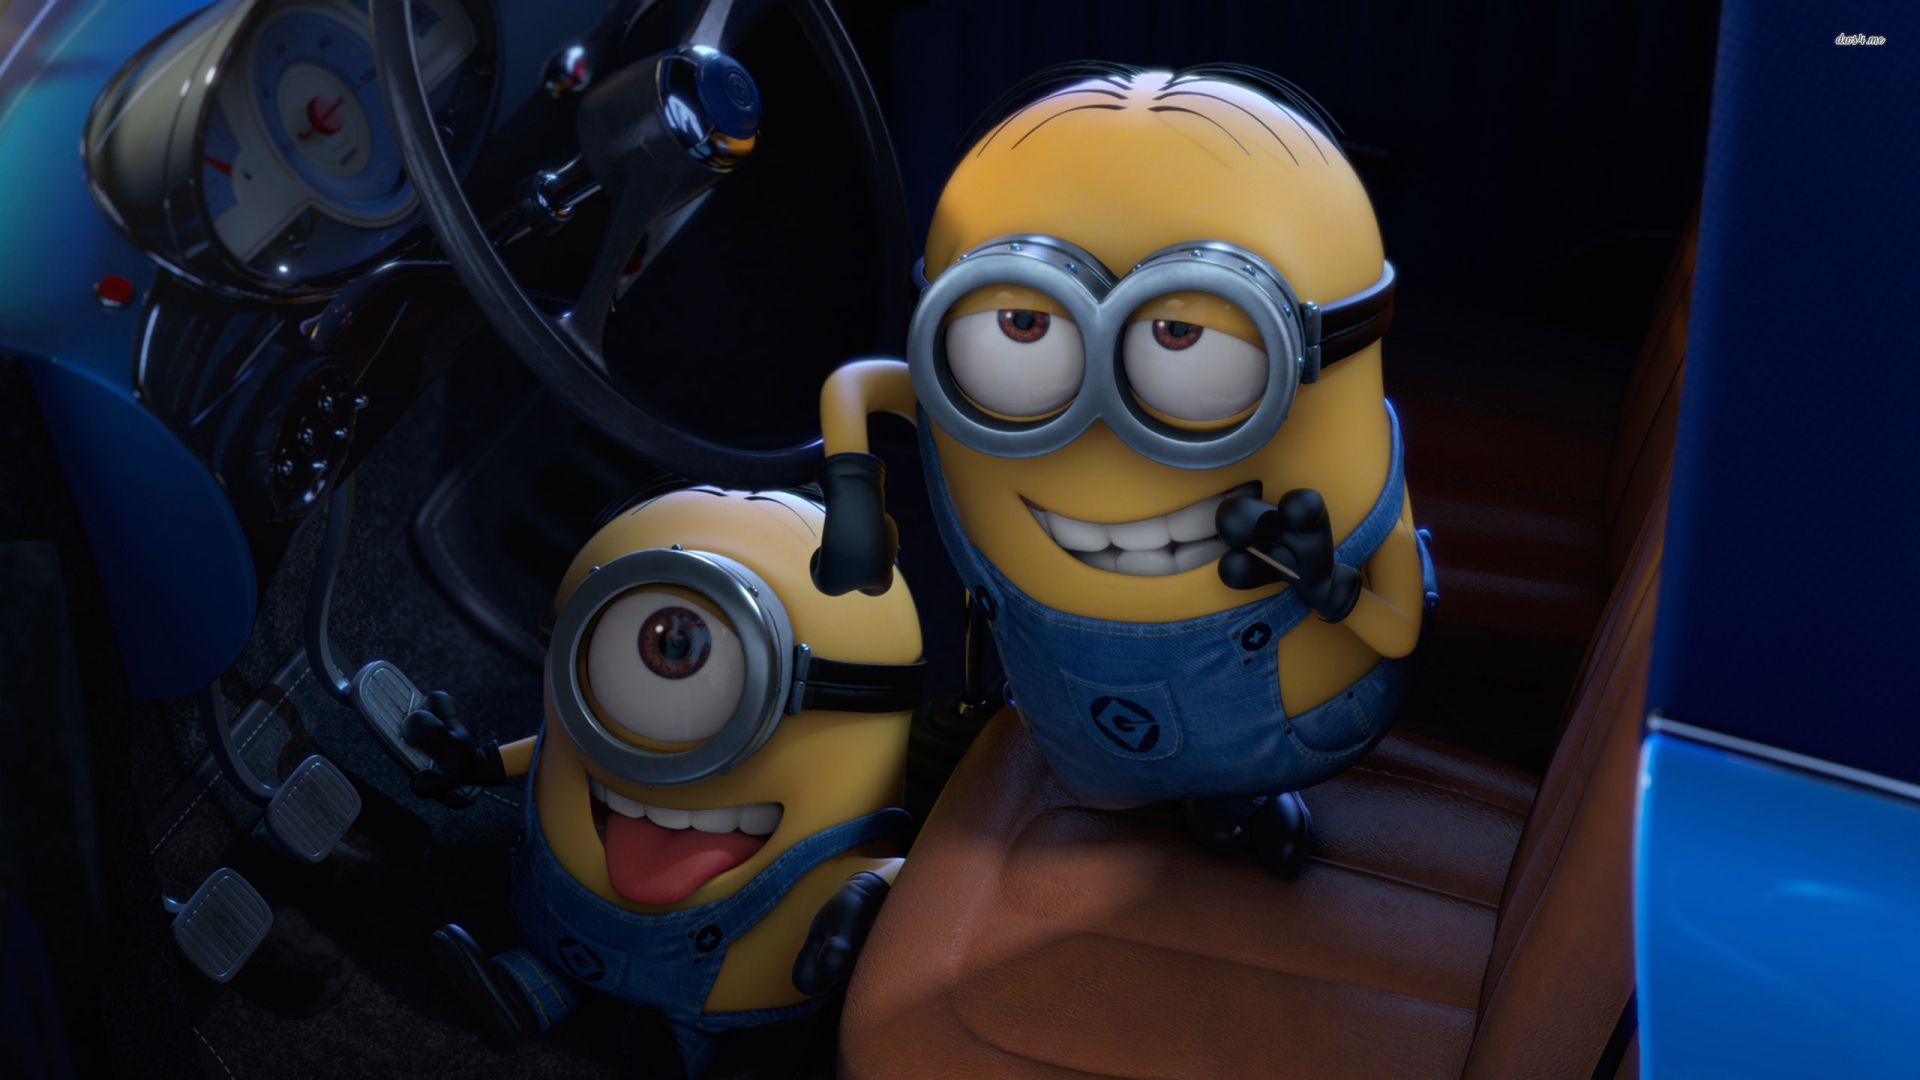 1920x1080 The Minions Funny Expressions Pics 1080p Laptop Full Hd Wallpaper Hd Movies 4k Wallpapers Images Photos And Background